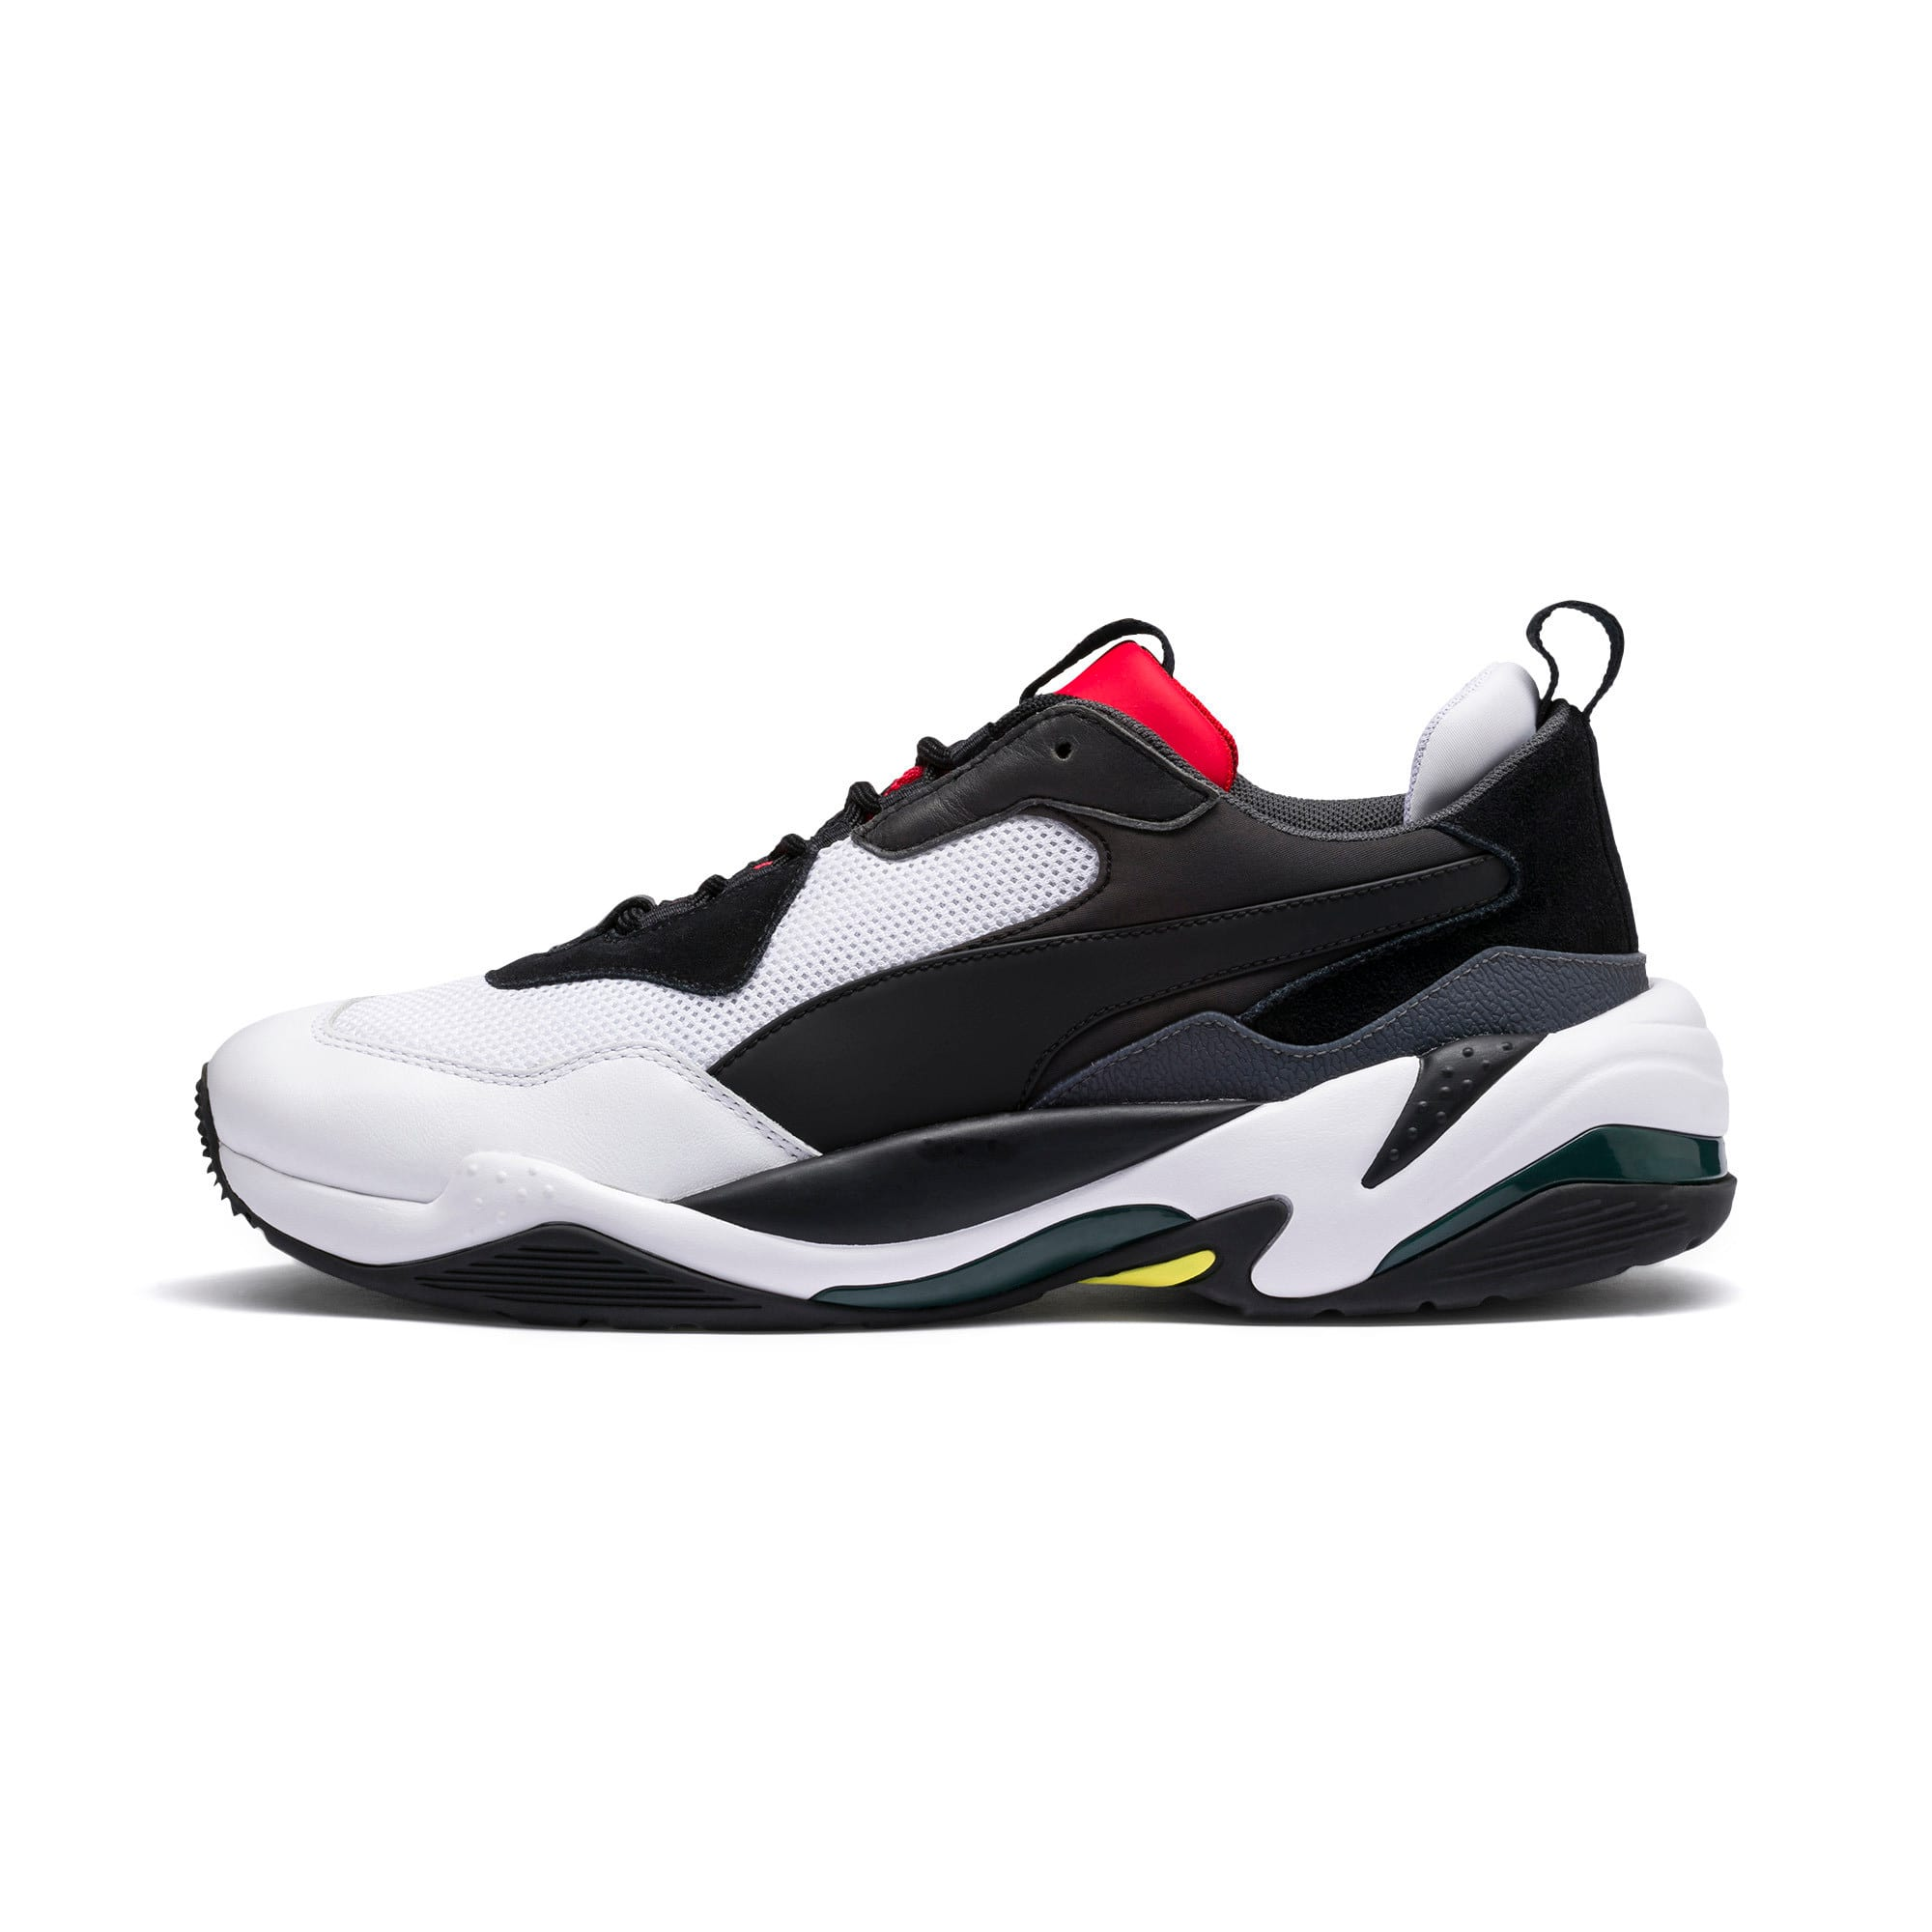 Thumbnail 1 of Thunder Spectra Sneakers, Puma Black-High Risk Red, medium